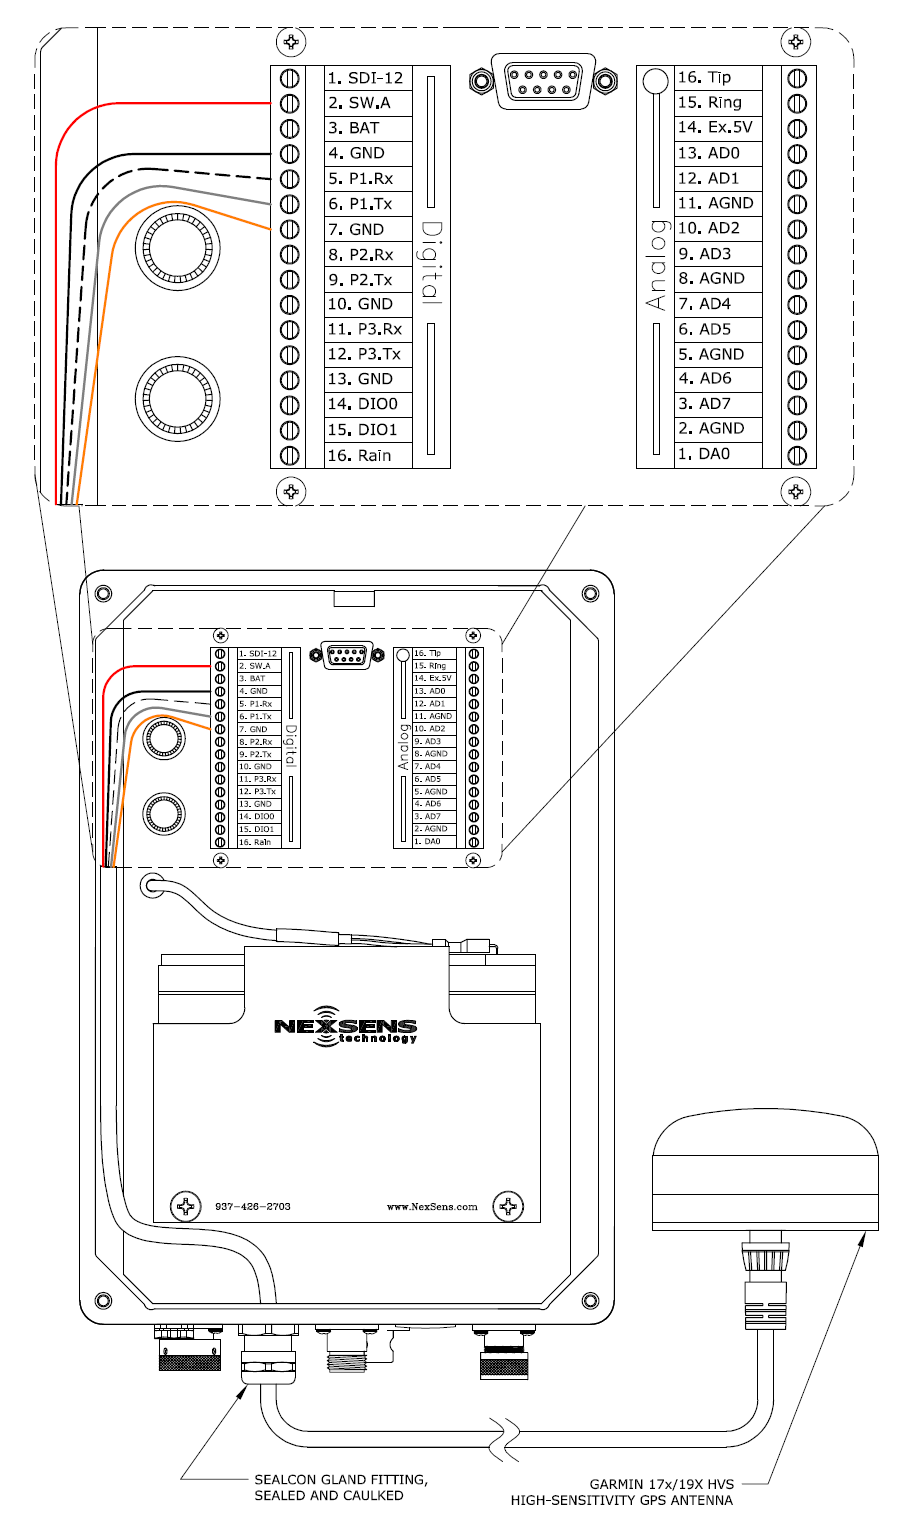 ➤ Diagram Garmin Wiring Diagram 17 on garmin 3010c wiring, garmin sensor, garmin network cable wiring, garmin usb wiring, atx connector diagram, data mapping diagram, garmin speedometer,